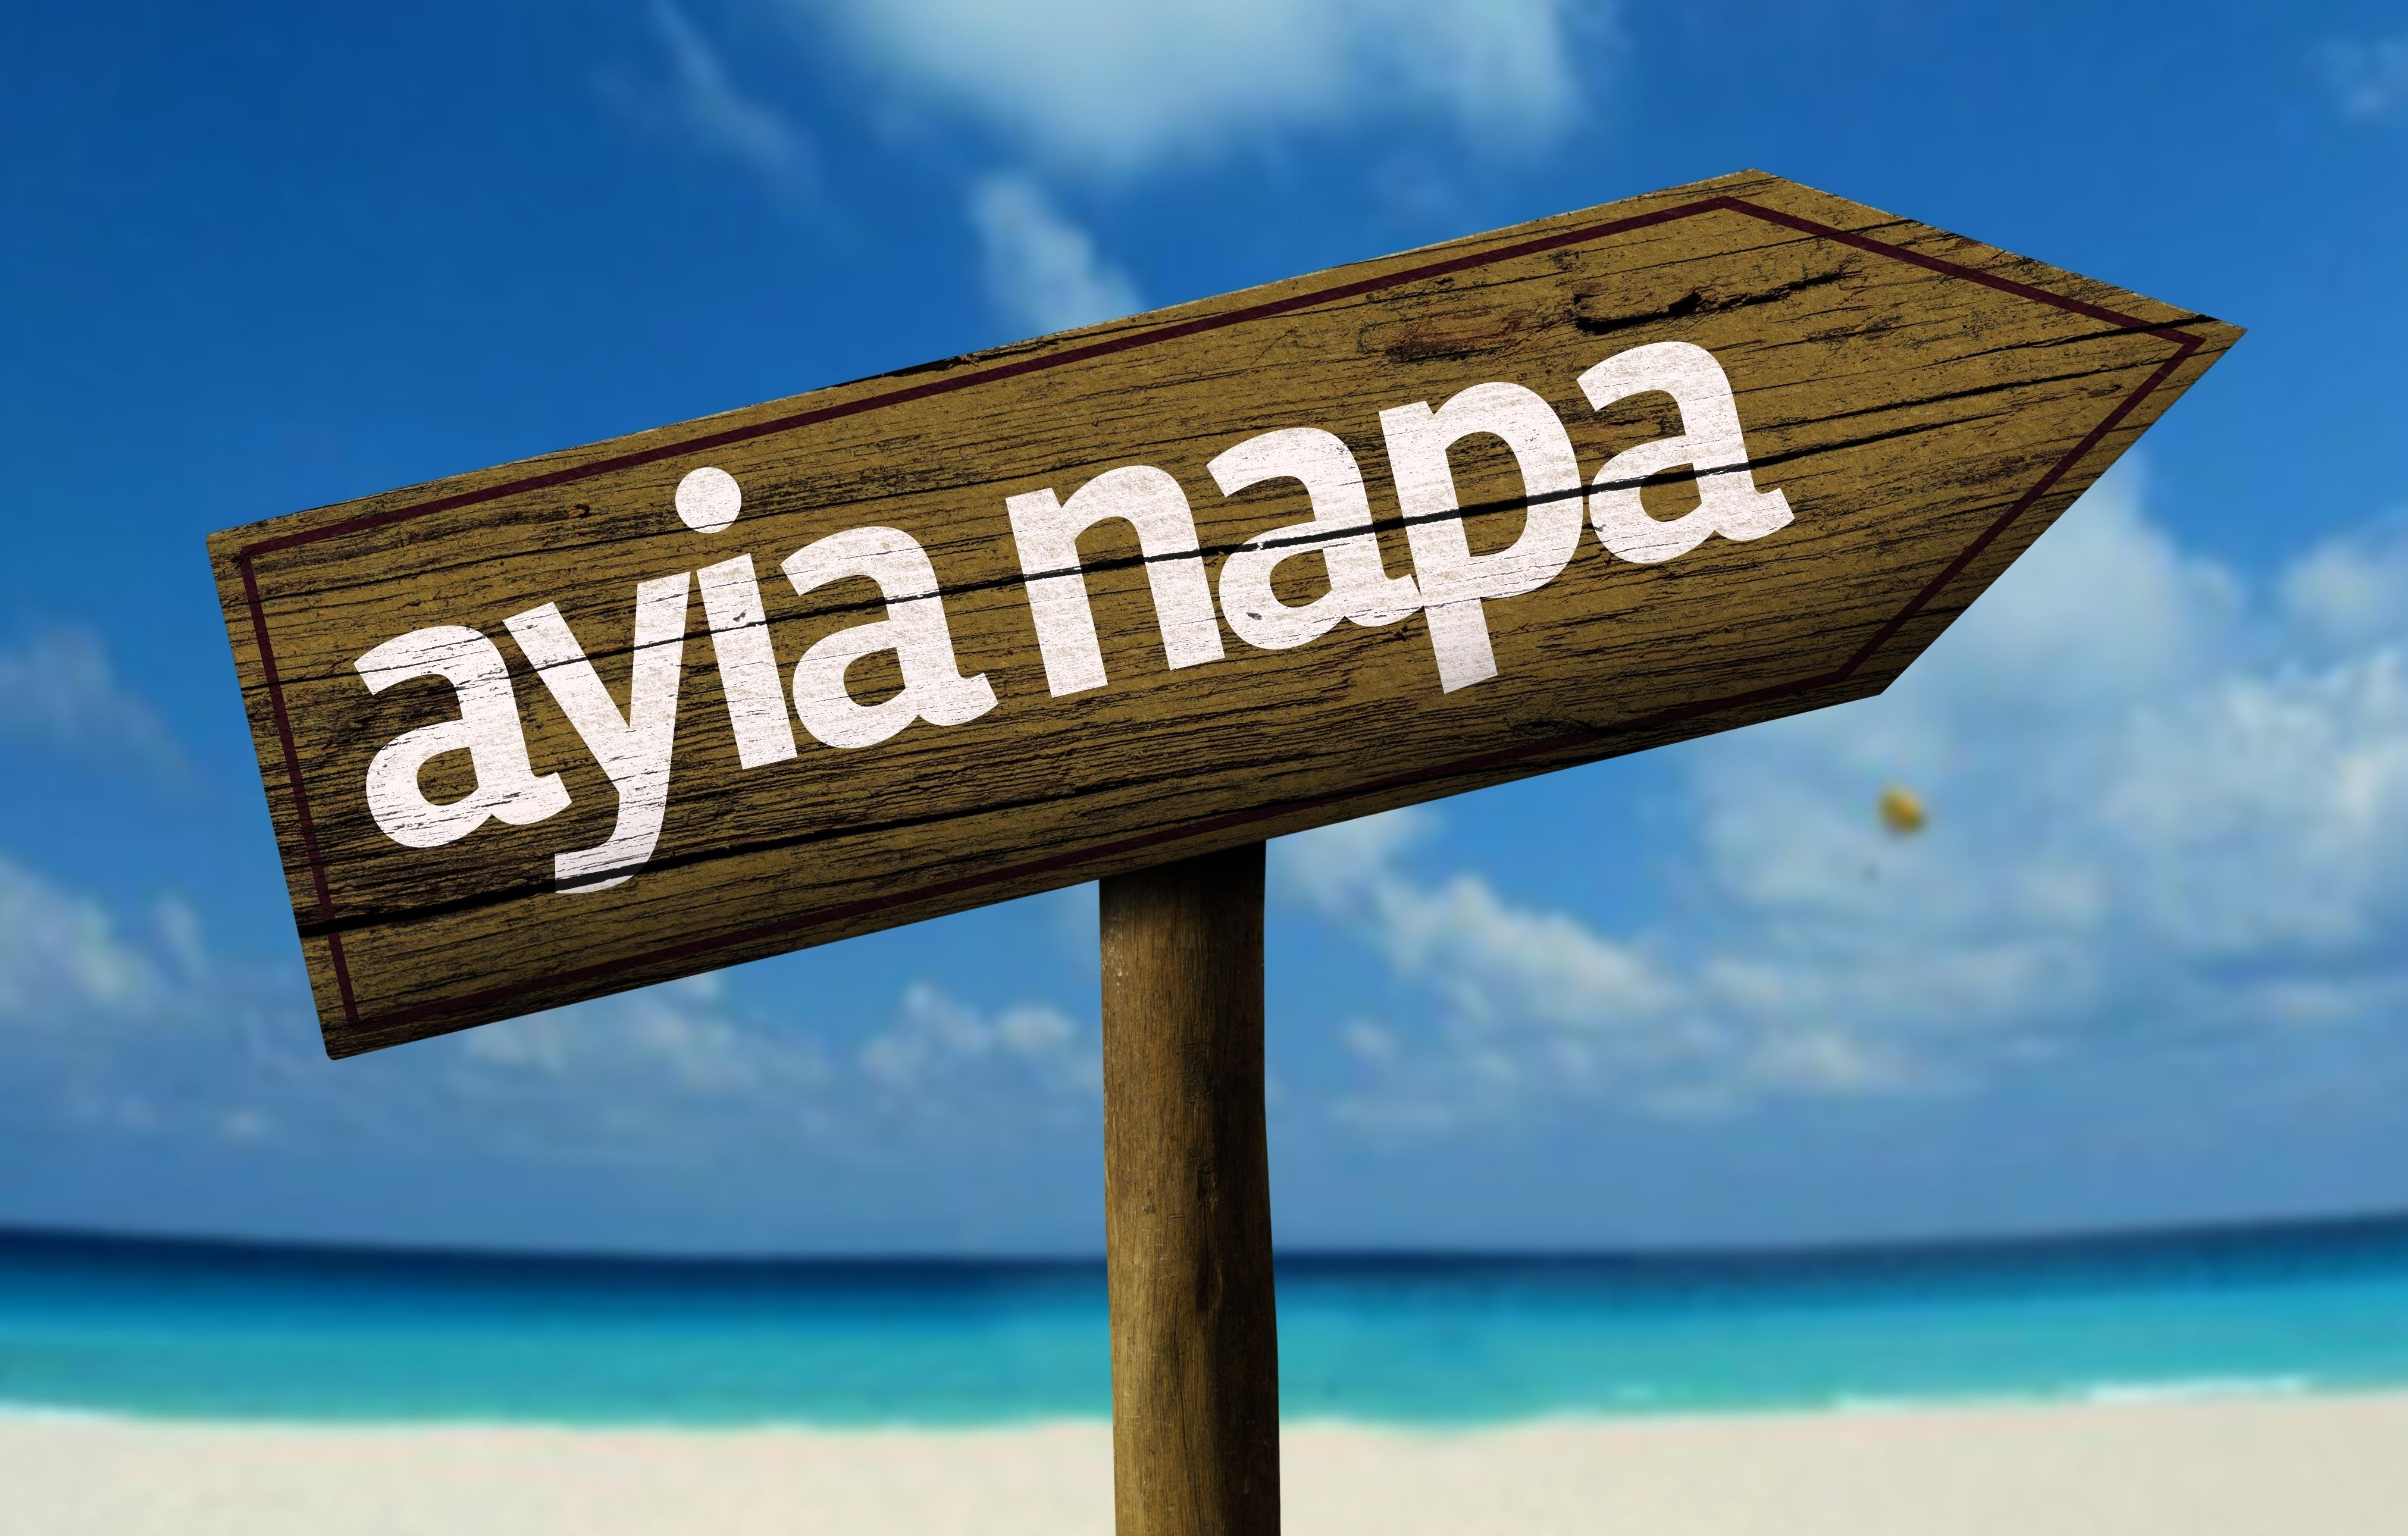 Big ayia napa wooden sign with a beach on background